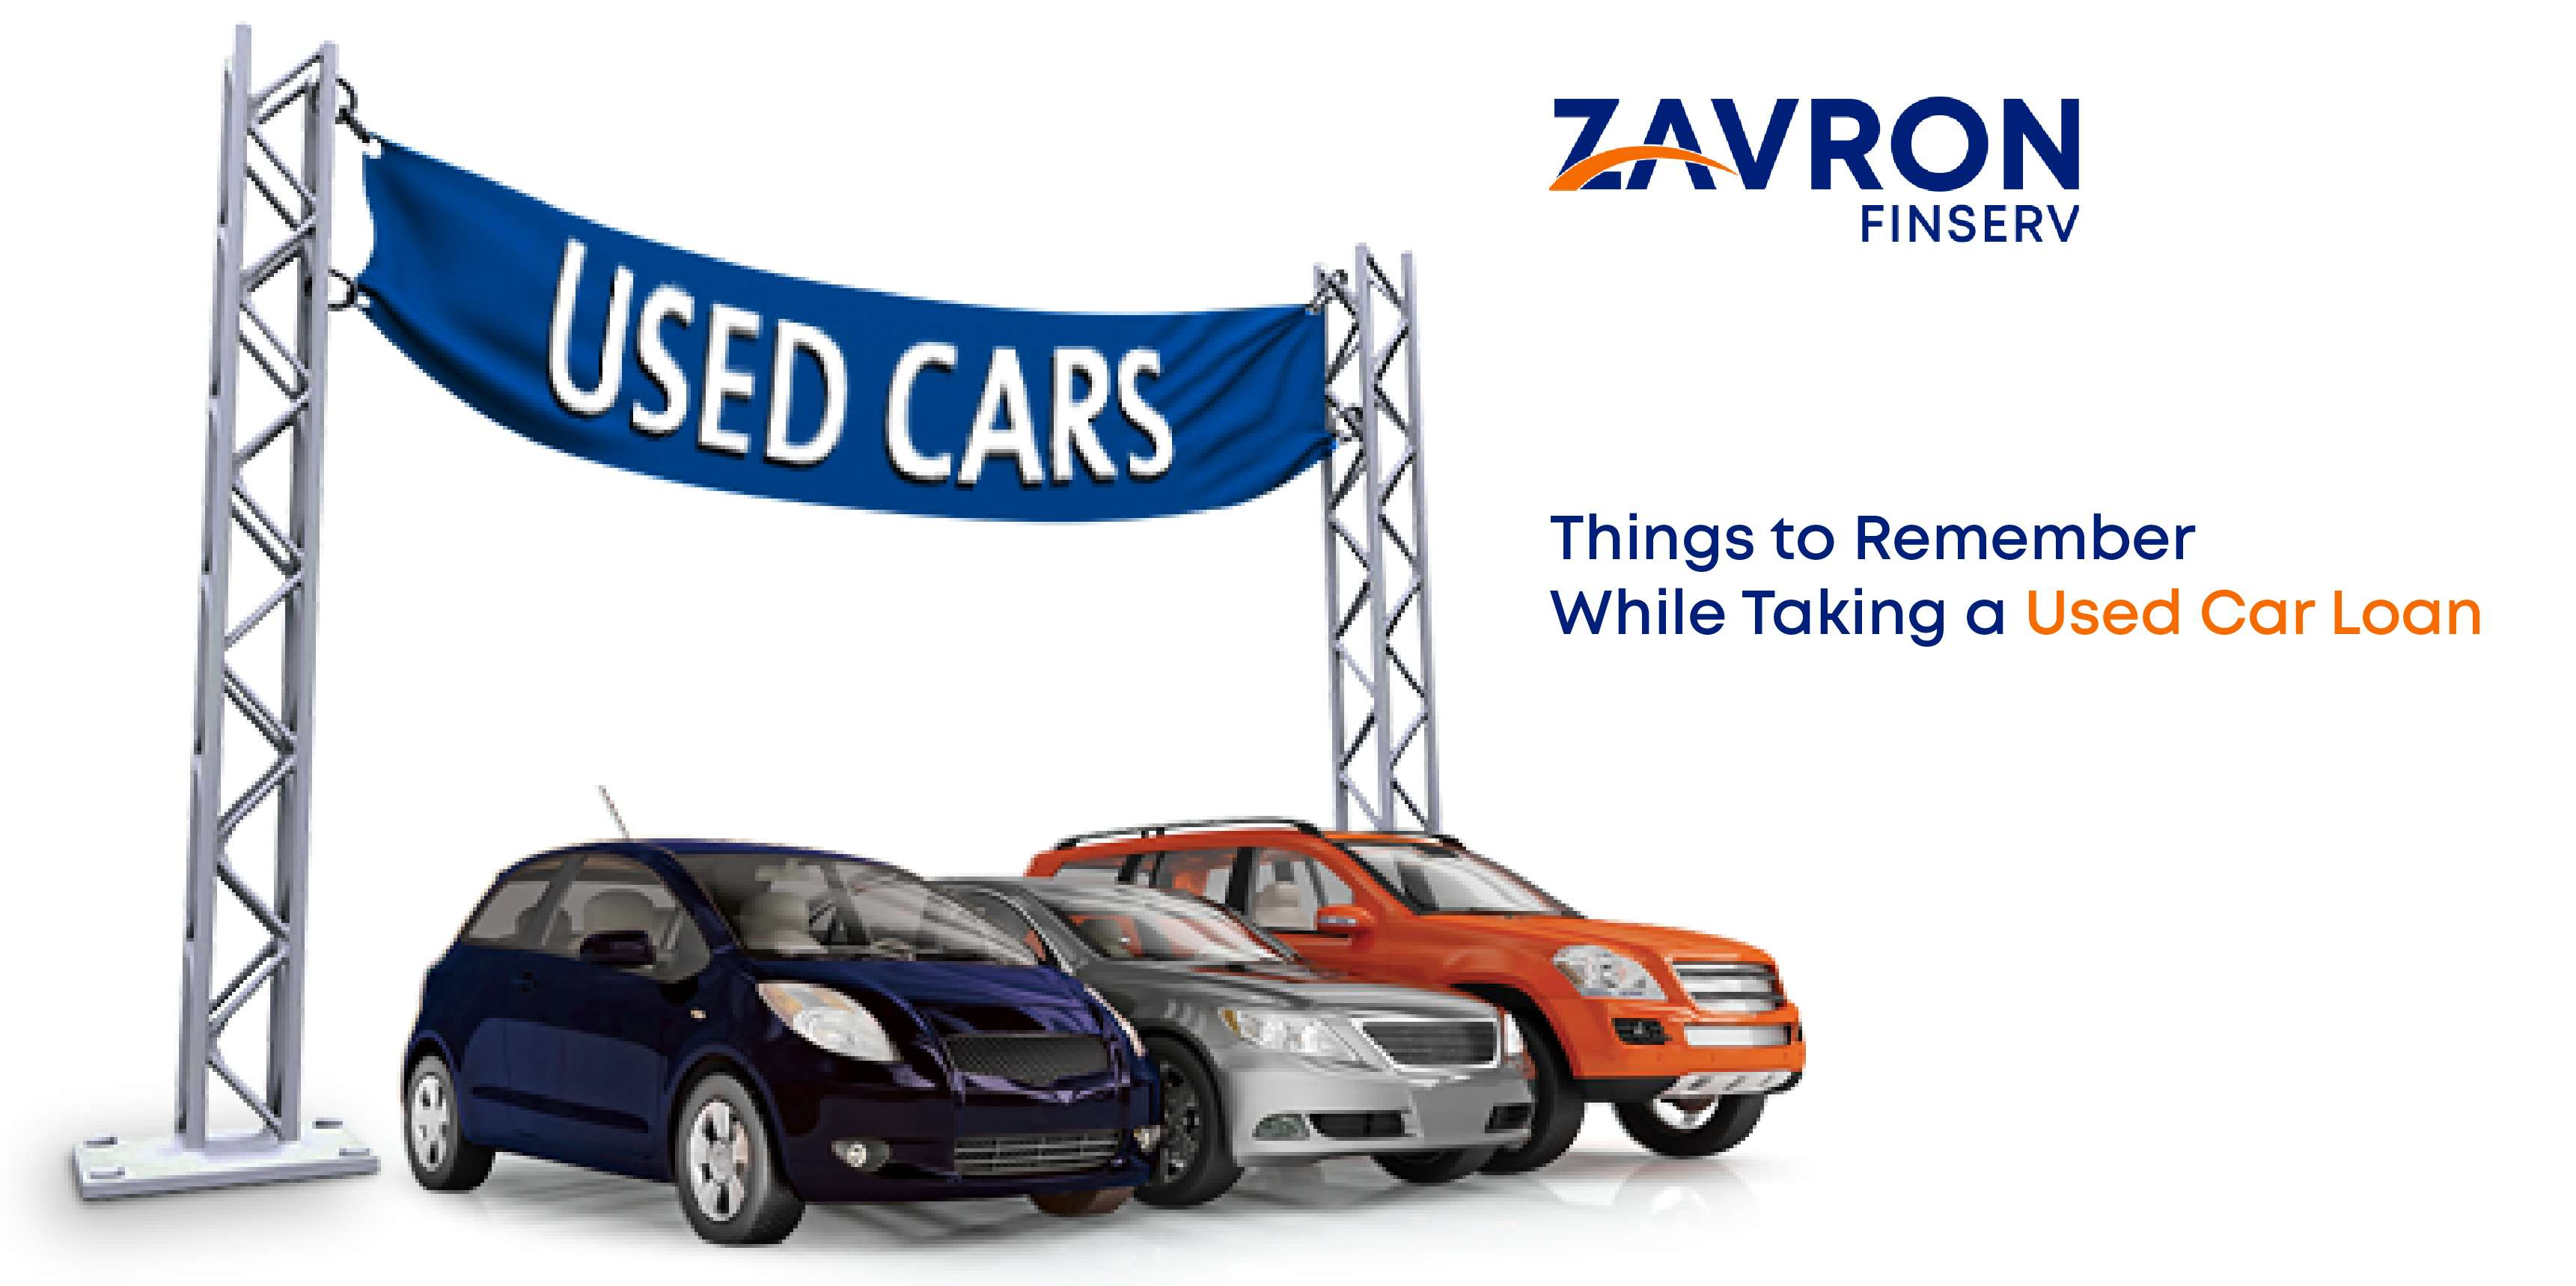 11 Things to Remember While Taking a Used Car Loan